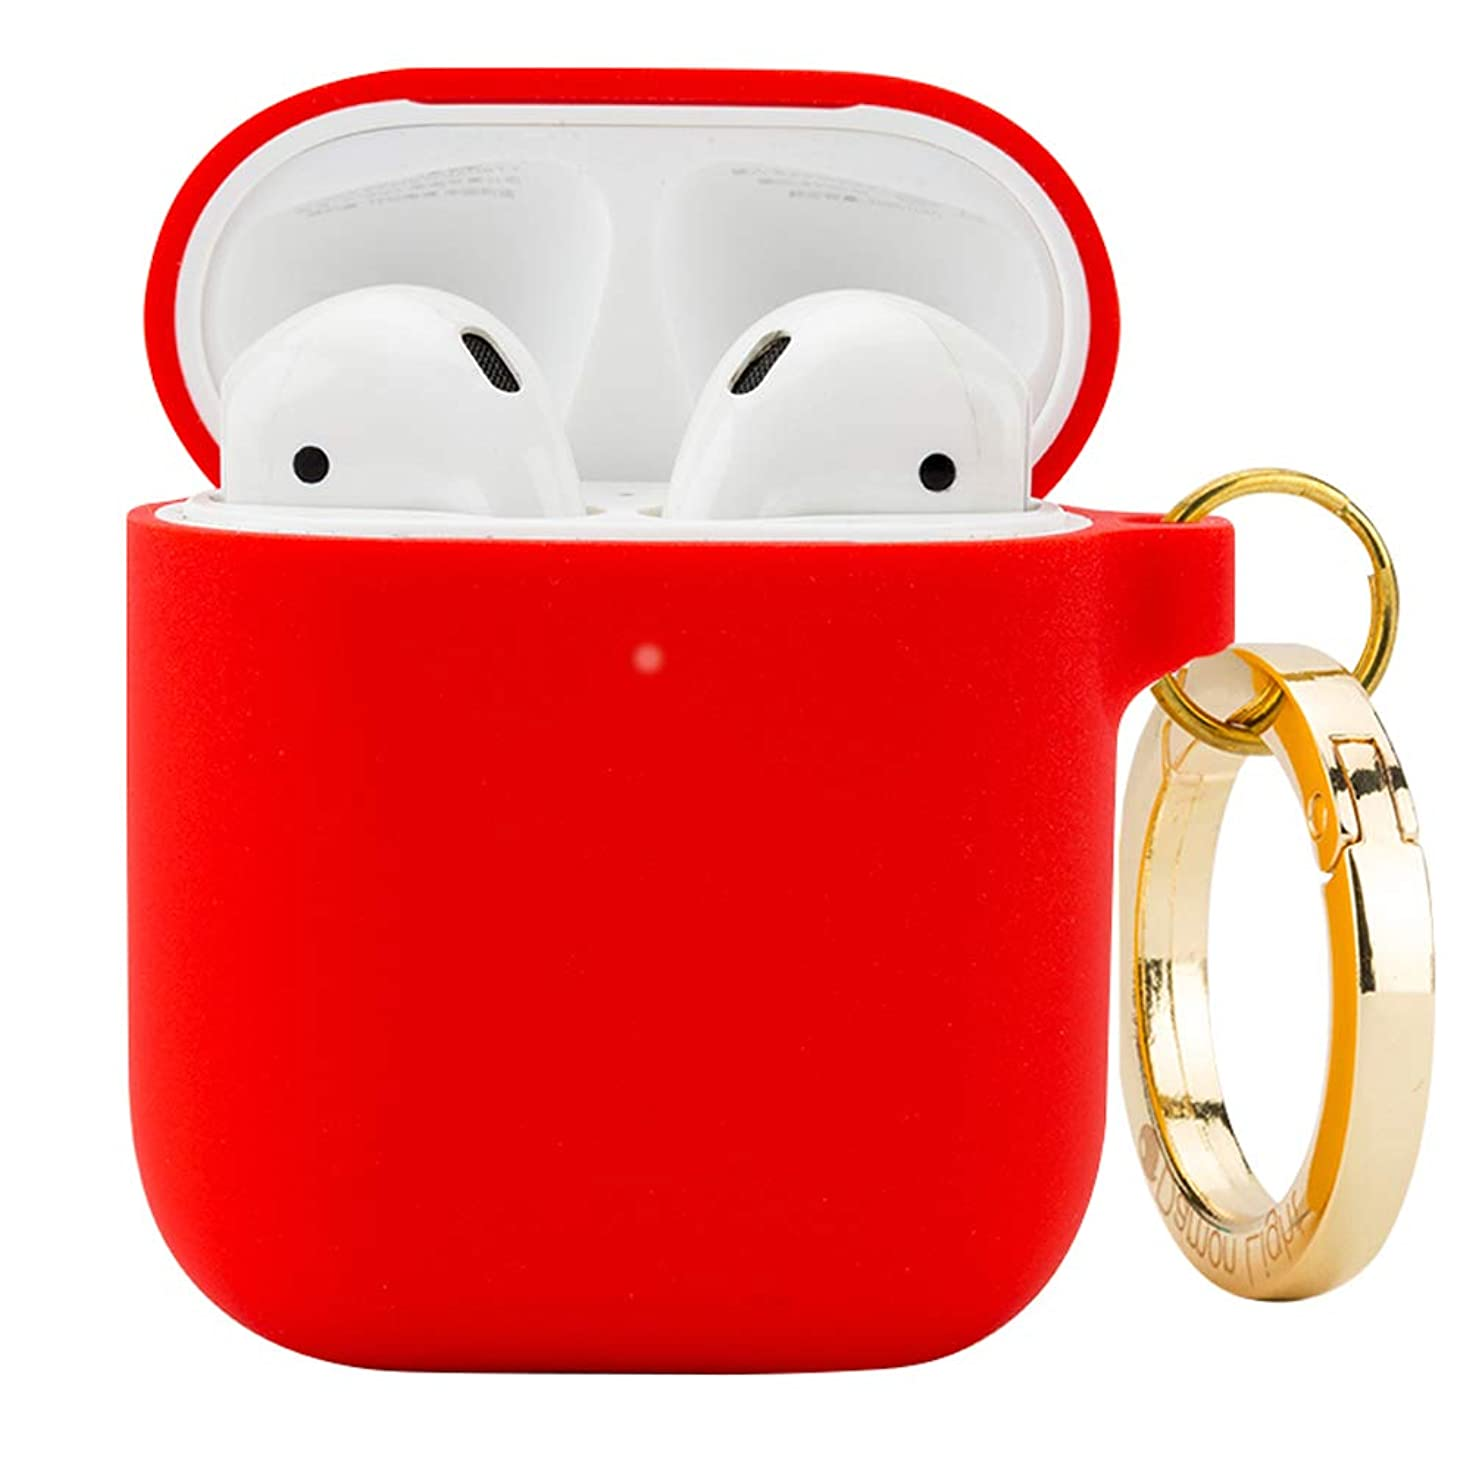 DamonLight Premium Silicone Airpods Case with Carabiner[Front LED Visible][with no Hinge] Full Protective Cover Skin Compatible with Apple Airpods 1&2(Red)